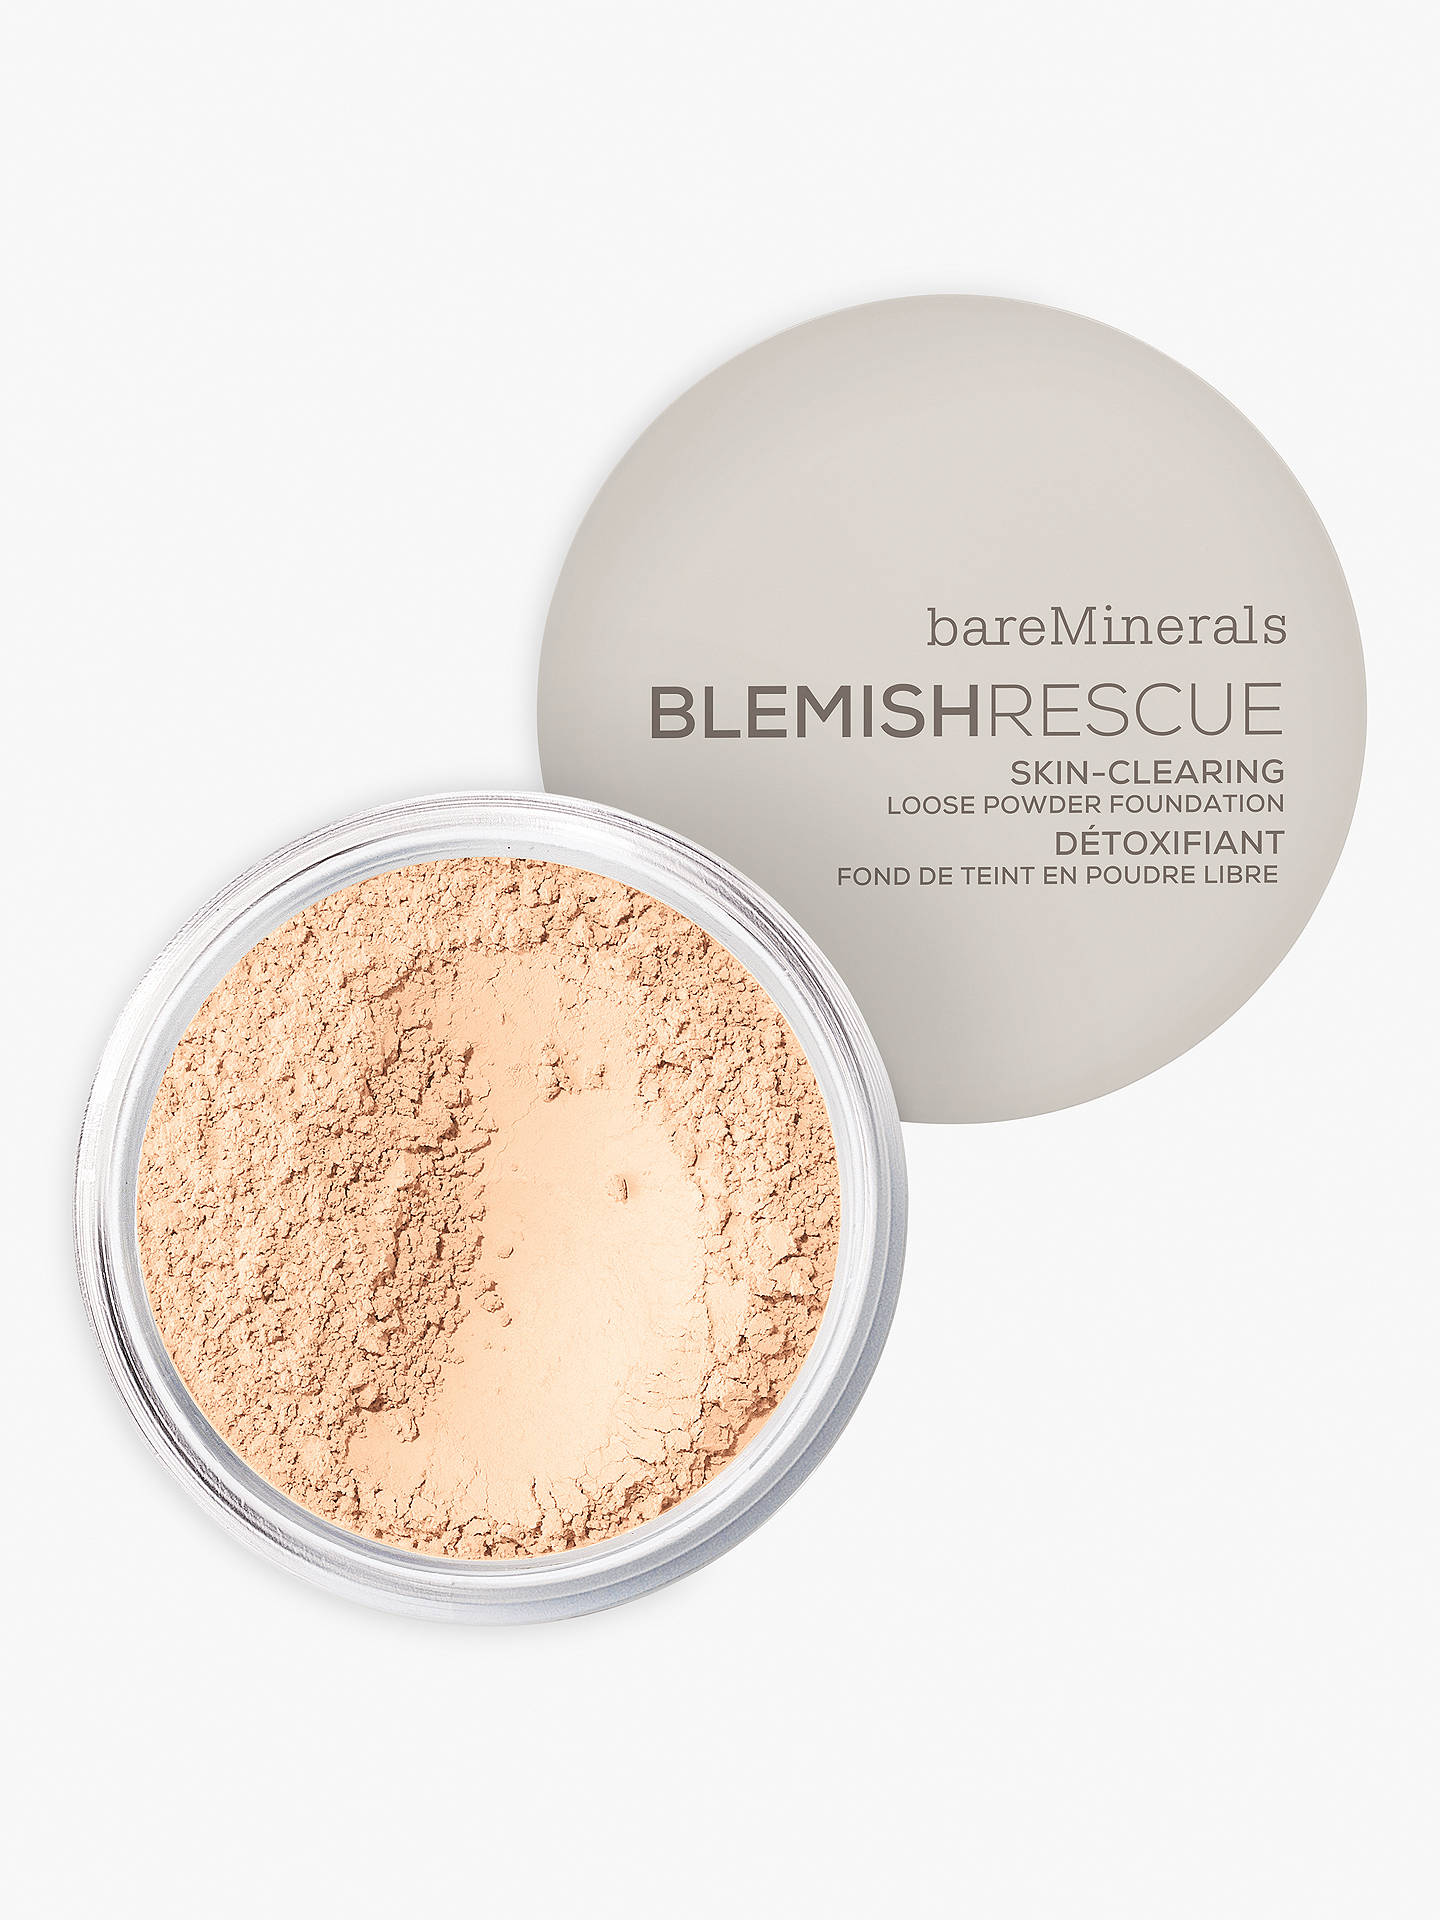 Buy bareMinerals BlemishRescue™ Skin-Clearing Loose Powder Foundation, Fair 1C Online at johnlewis.com